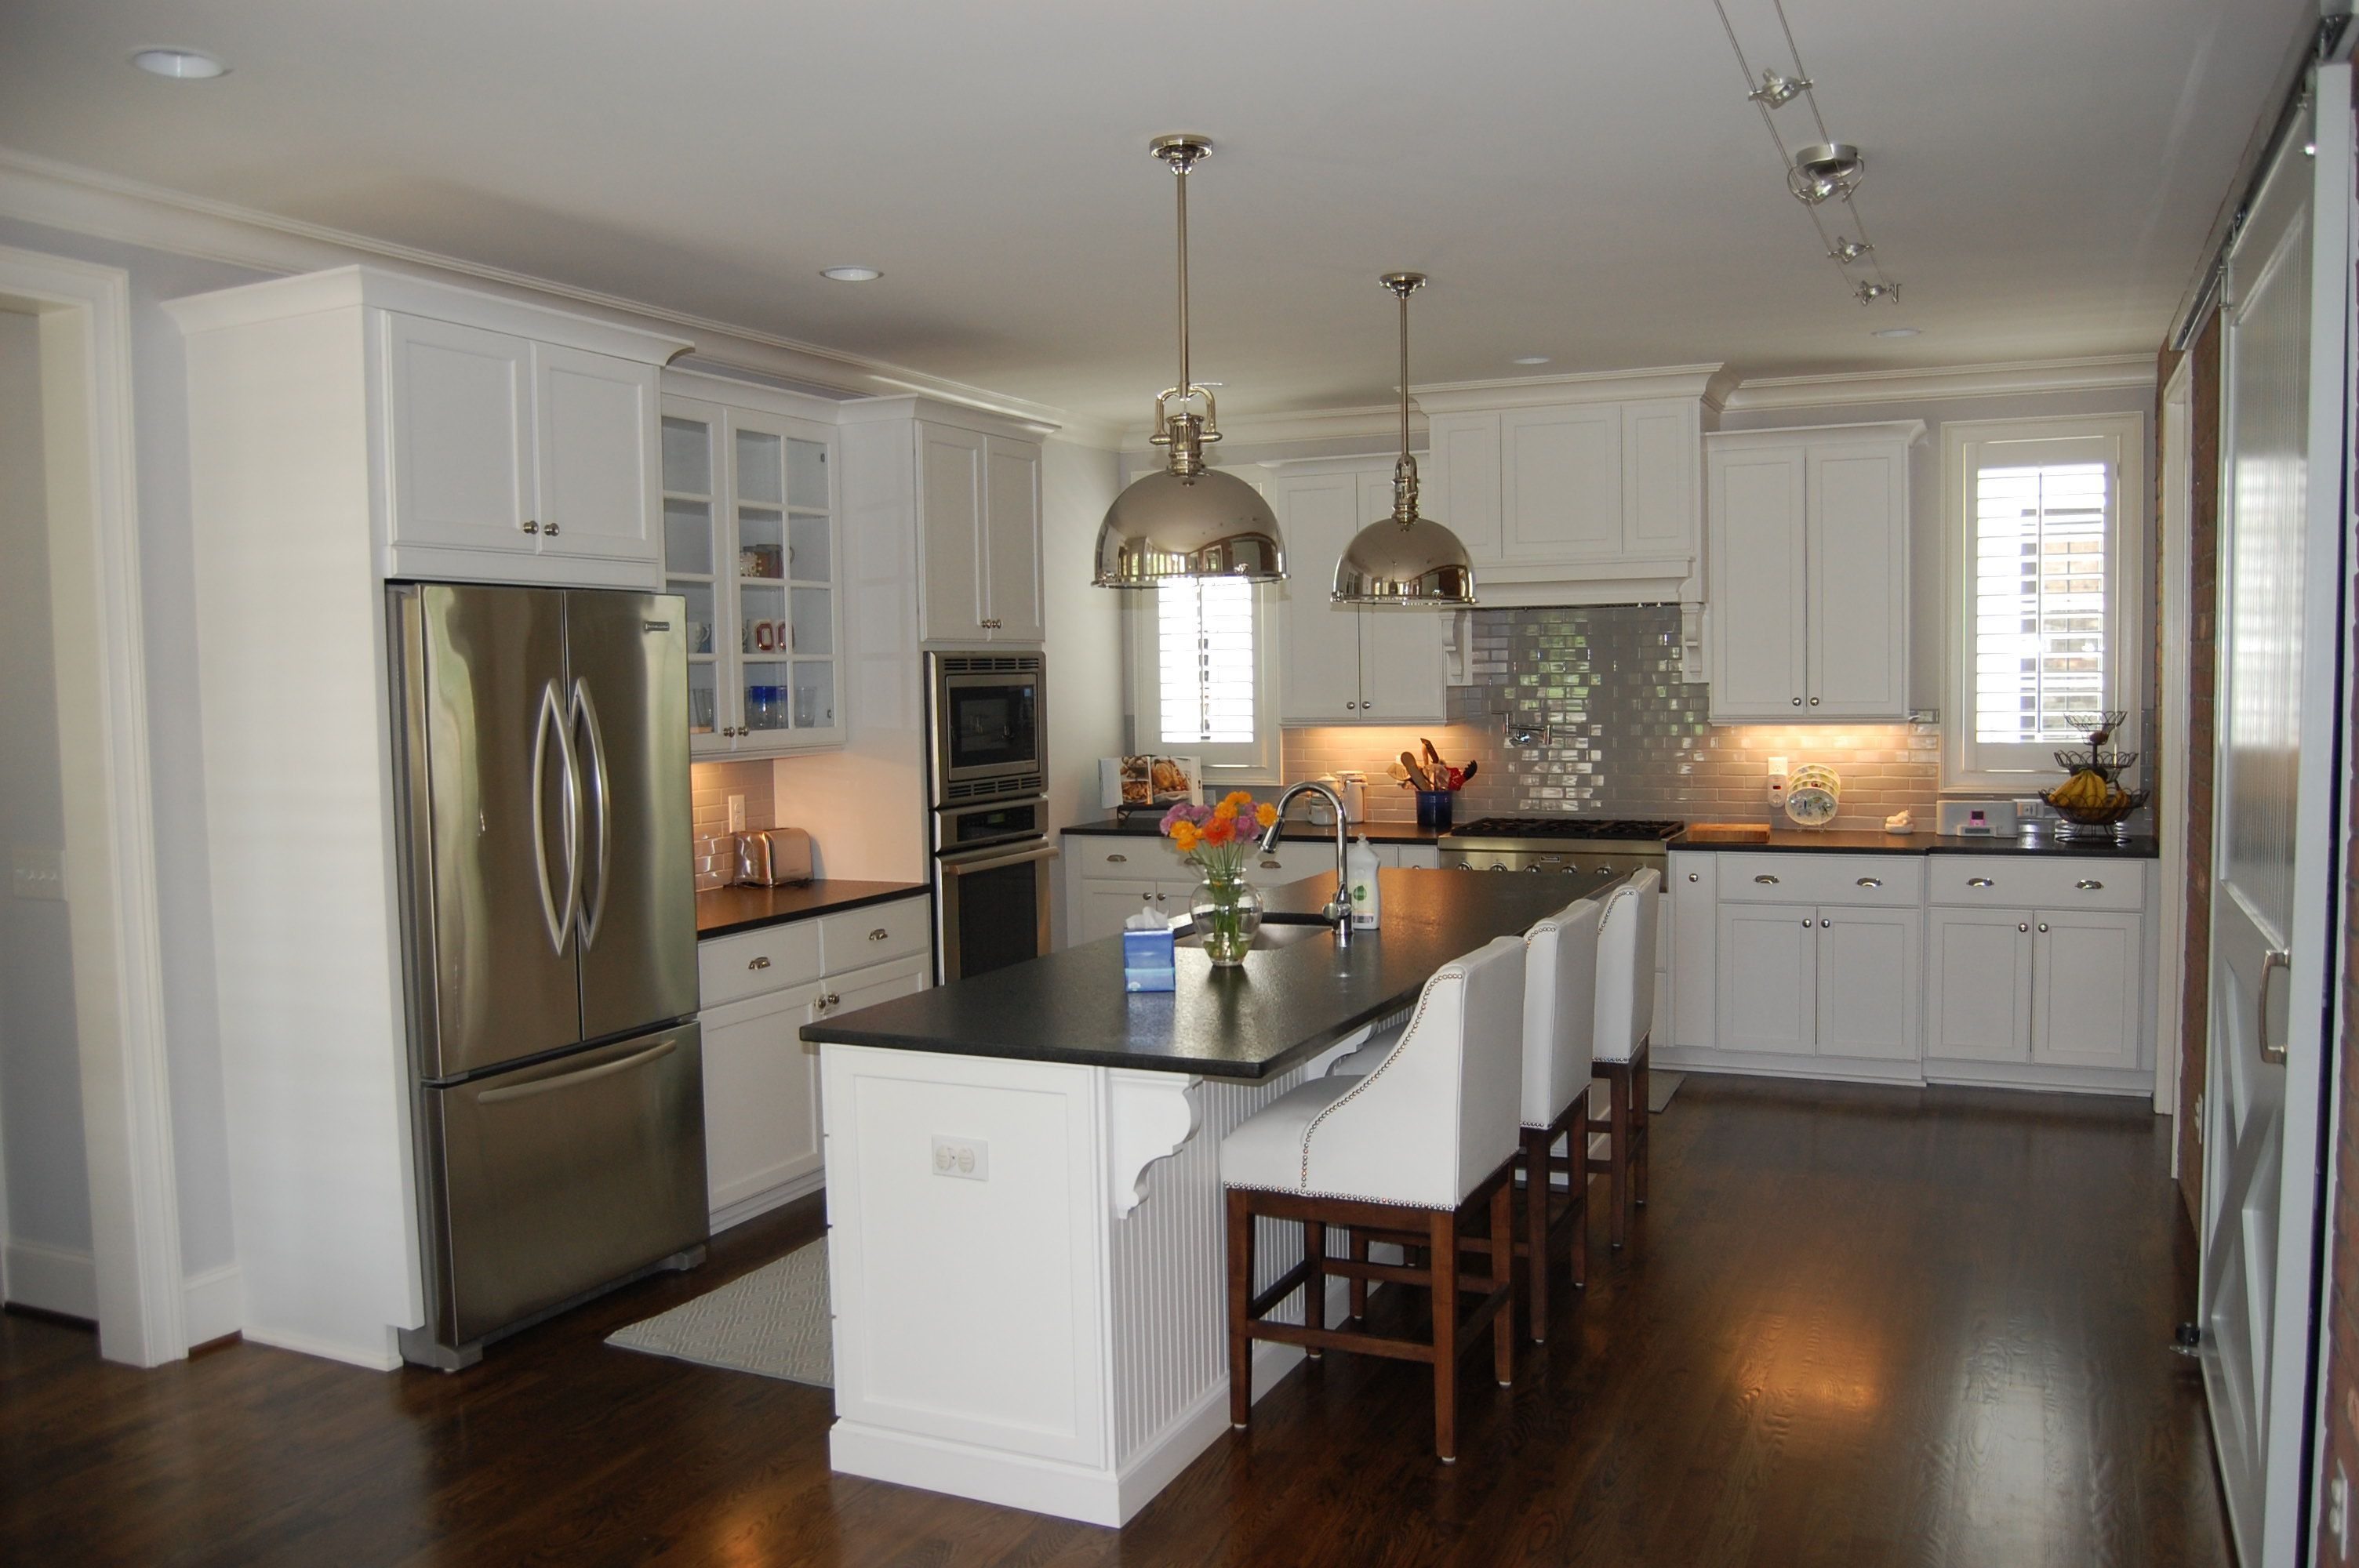 Farmhouse Kitchen Remodel Pictures And Kitchen Remodel Layout Light Granite In 2020 Kitchen Remodel Small Cheap Kitchen Remodel Simple Kitchen Remodel